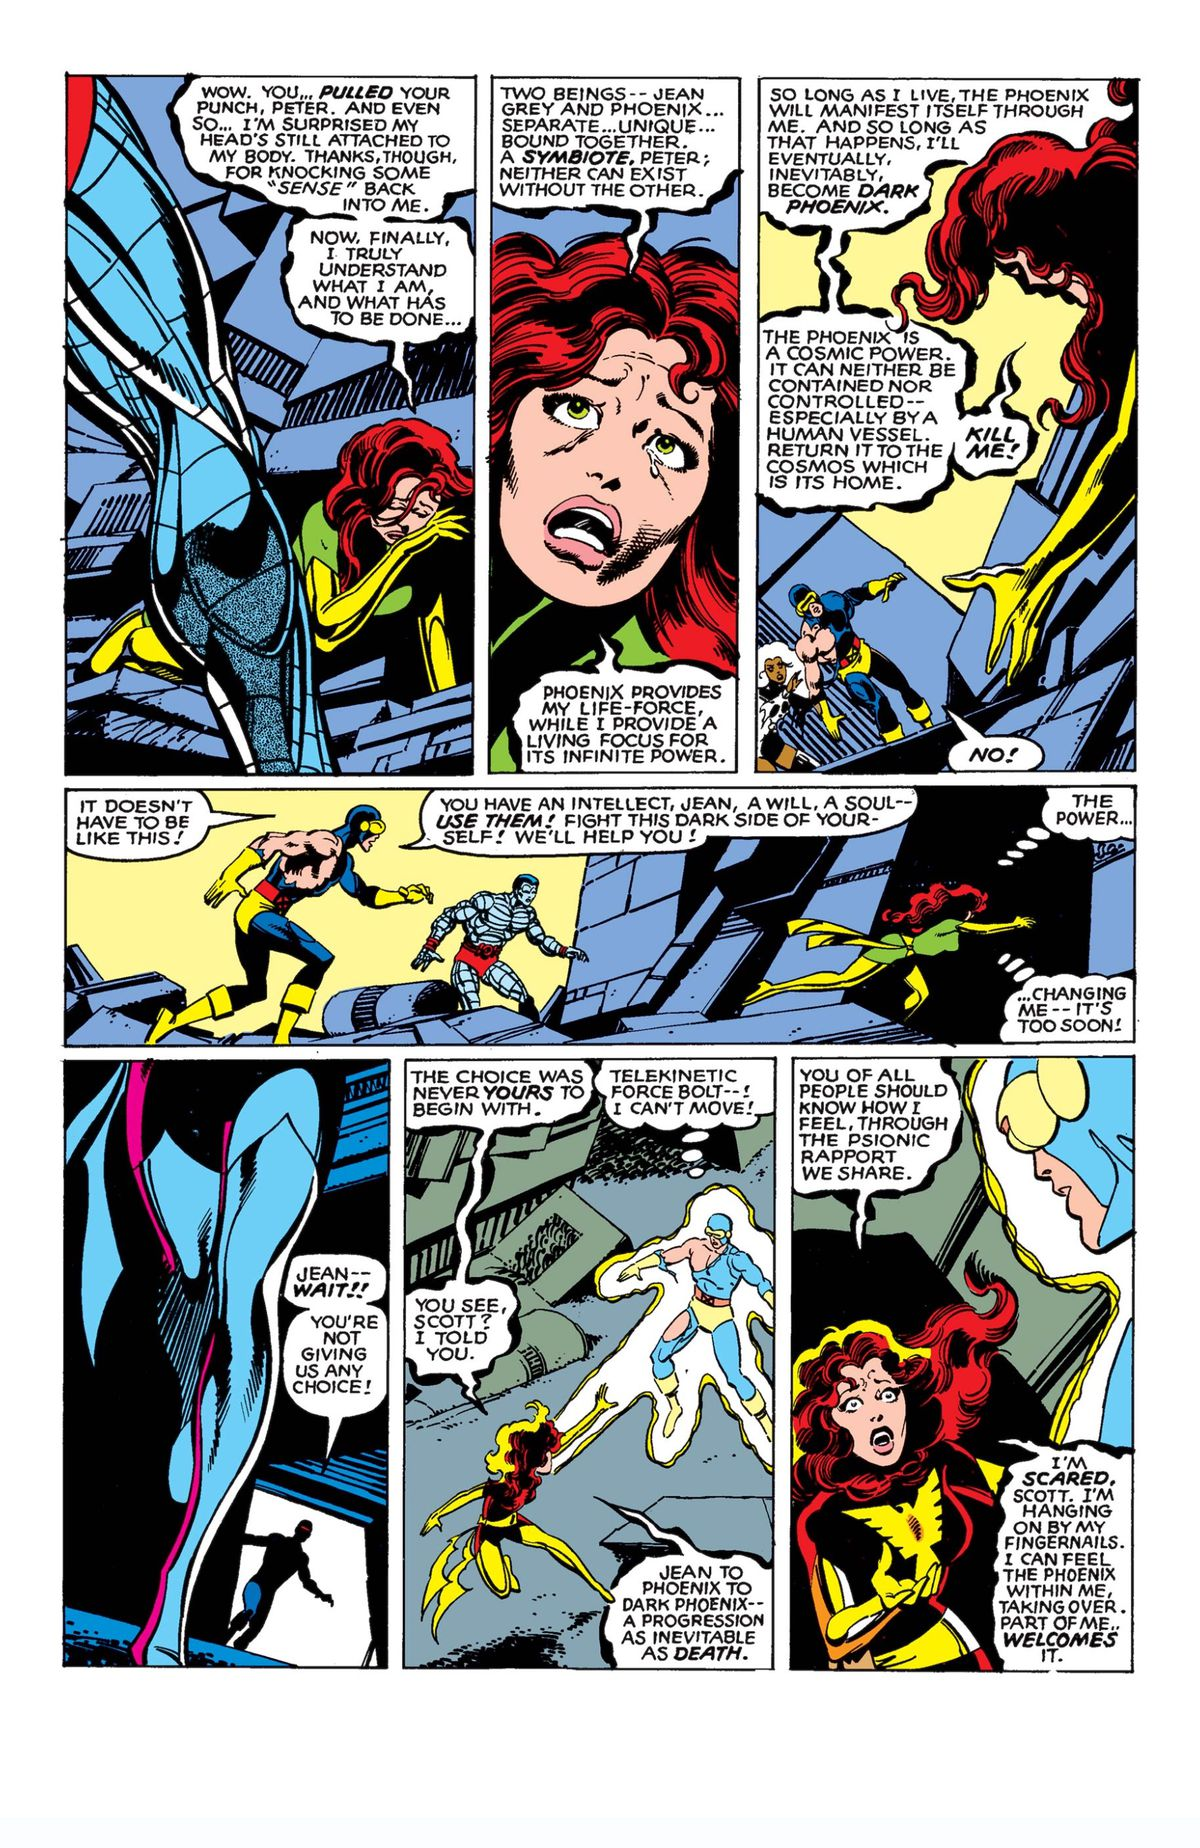 Jean Grey chooses to die in Uncanny X-Men #137, The Phoenix Saga, Marvel Comics (1980).